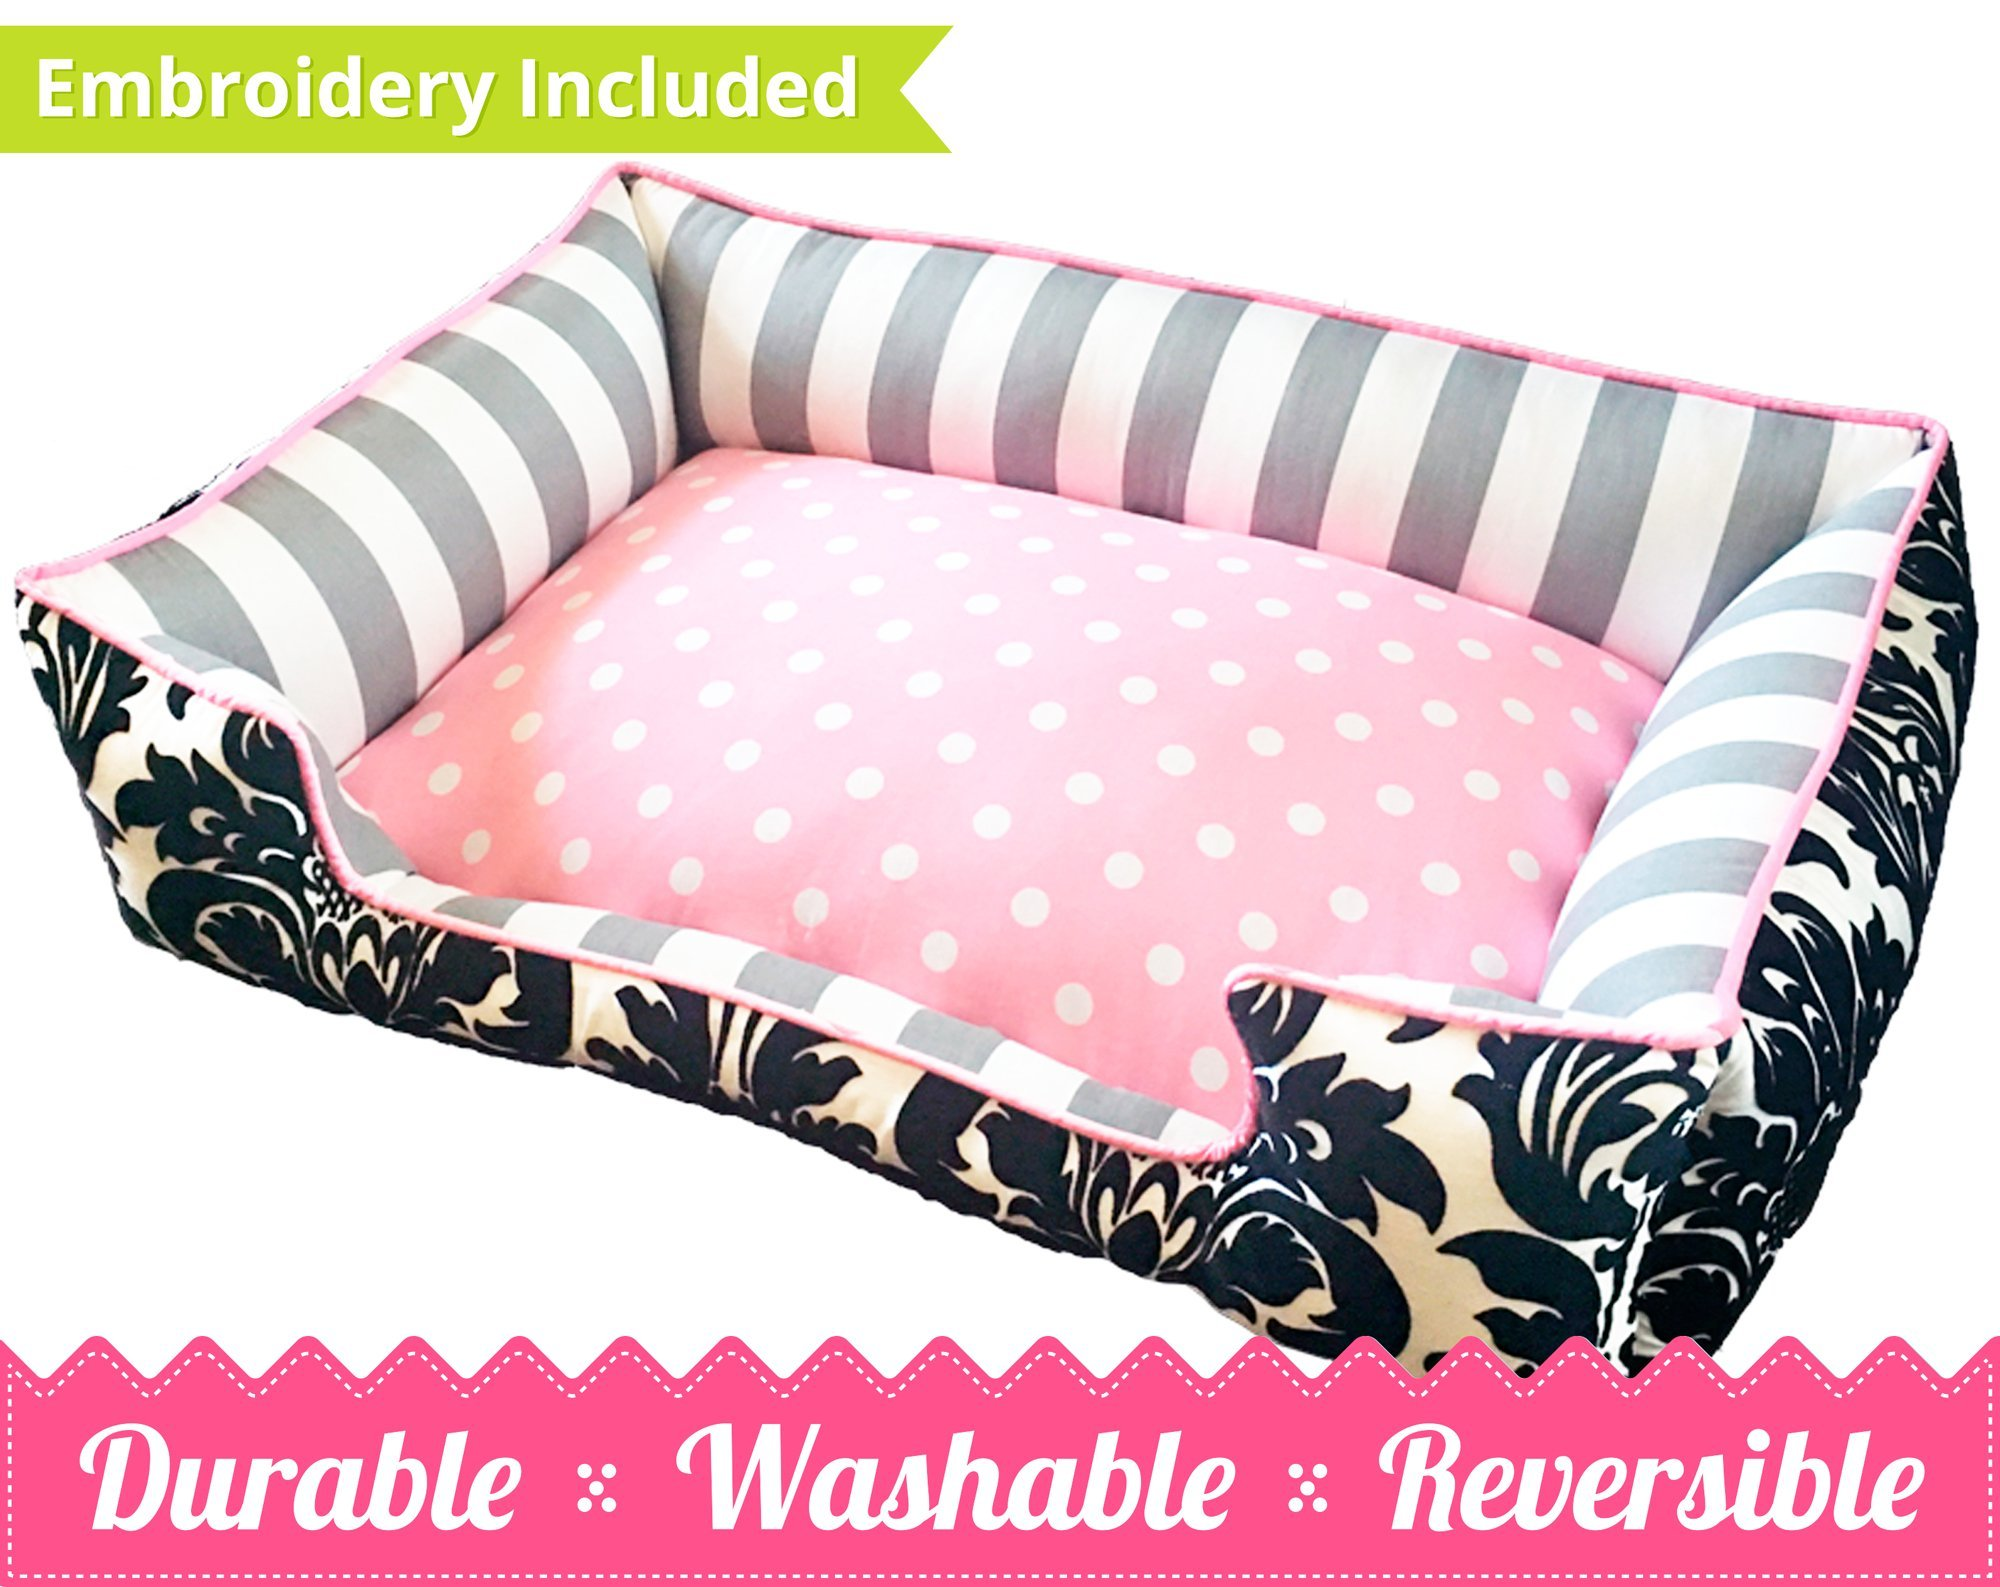 Pink, Grey & Black Damask Pet Bed | Ultimate in Comfort & Design | Bed is Reversible & Washable with a removable cover | Durable | Cat or Dog Bed | Quality Pet Bed | Stripe Dog Bed | Cat Bed